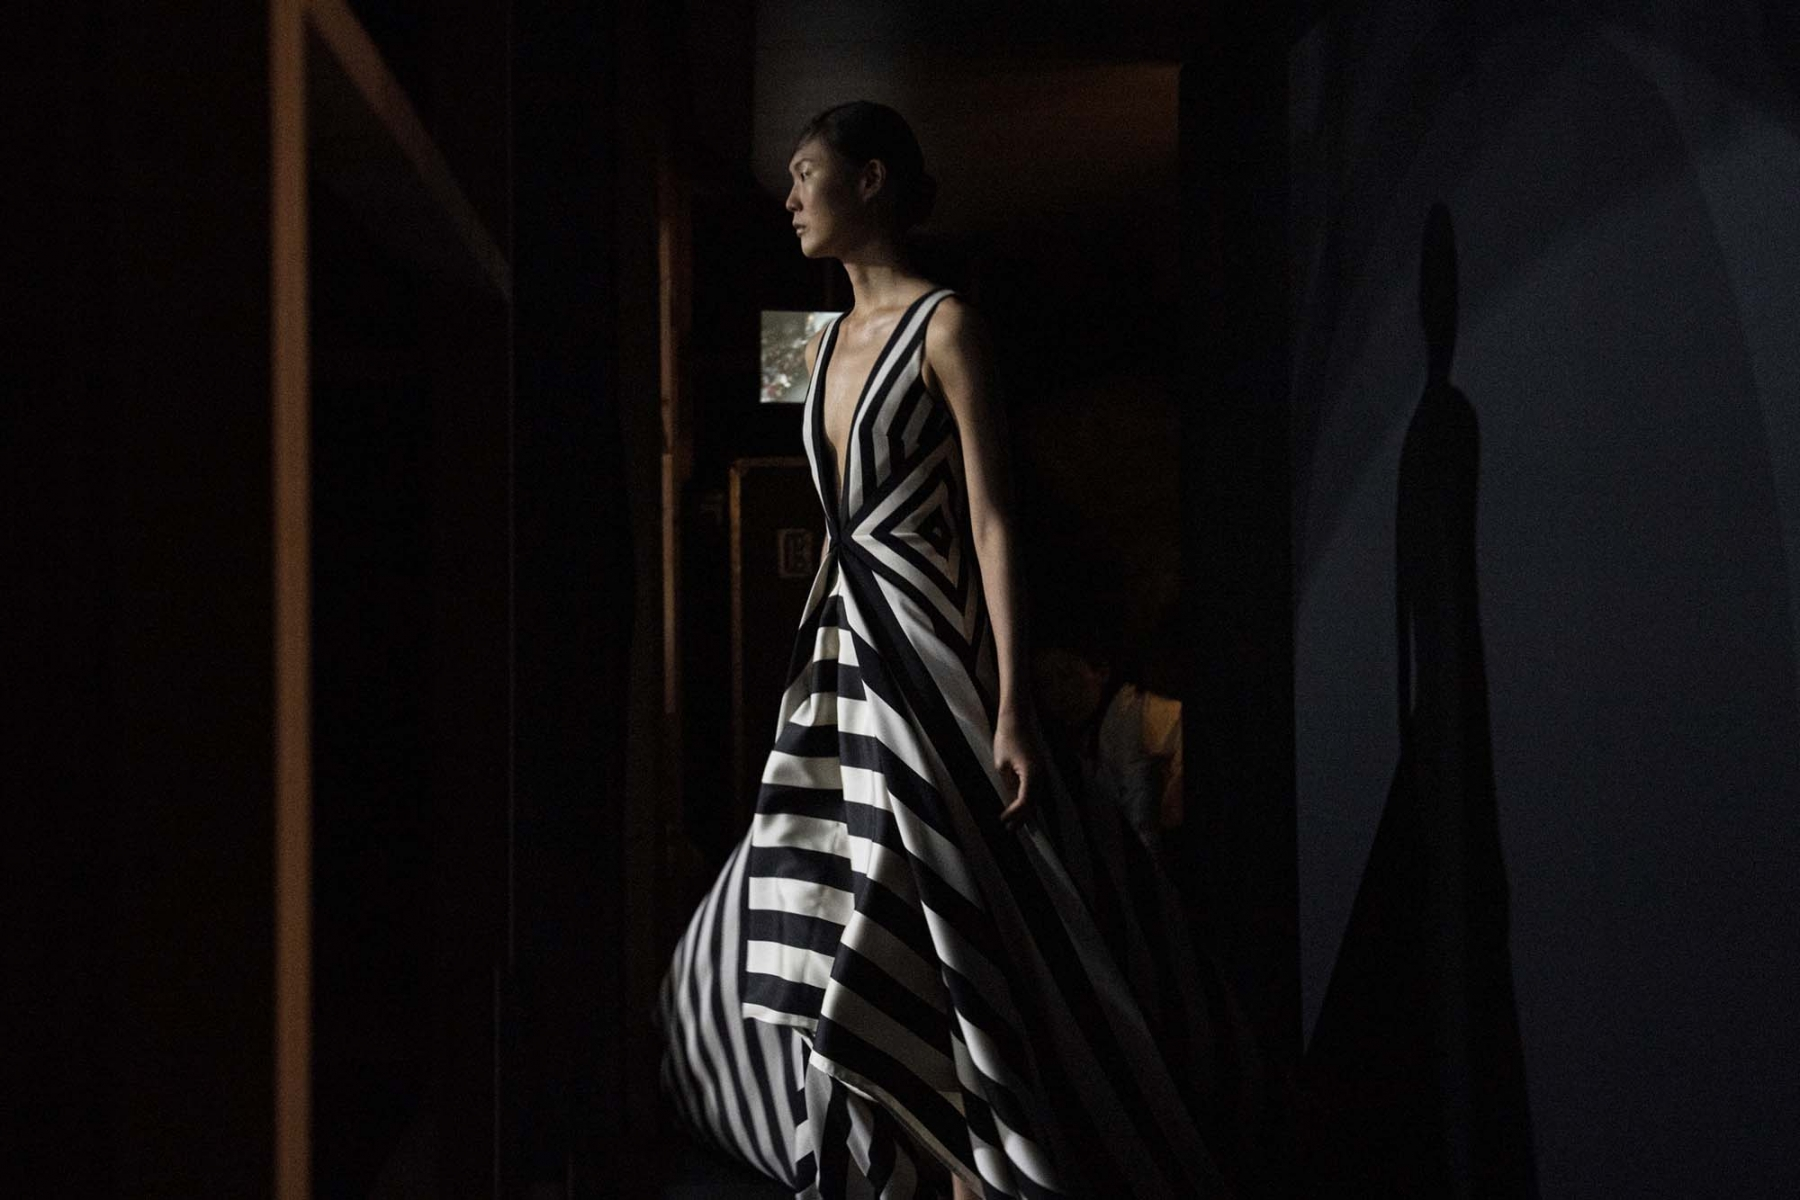 Atelier-by-Fang-Haute-couture-Automne-Hiver-2019-20-10